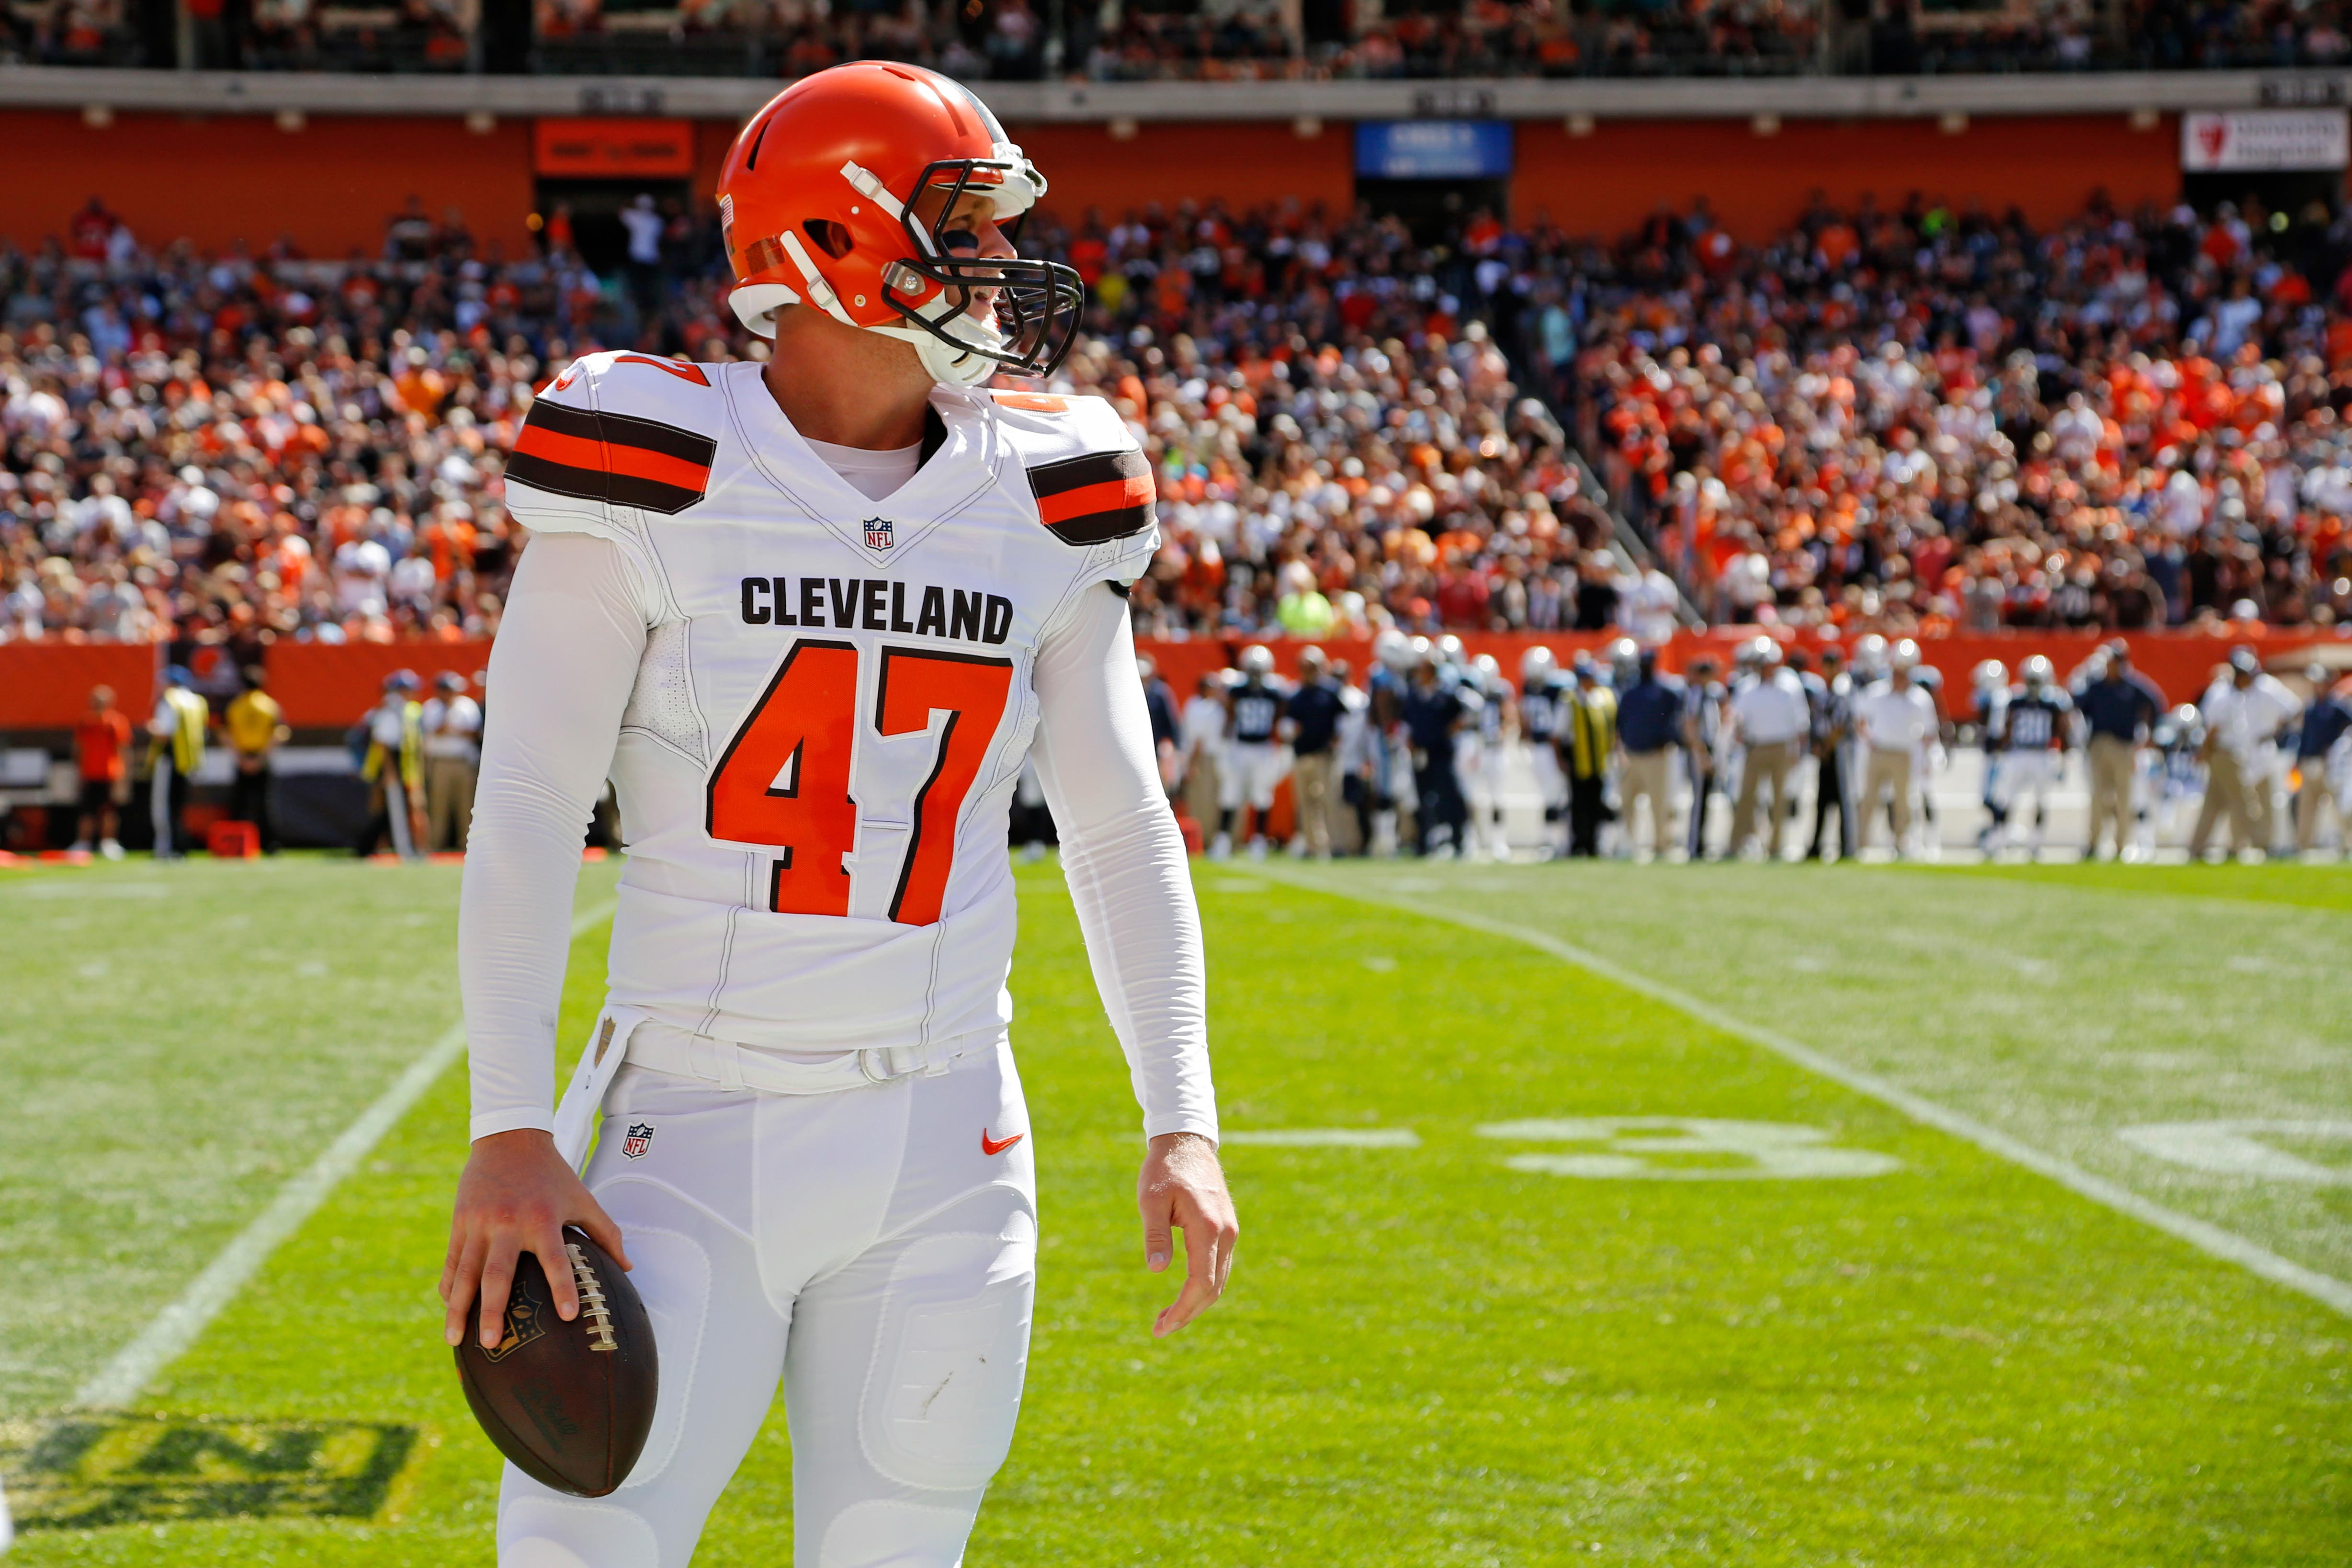 8834977-nfl-tennessee-titans-at-cleveland-browns